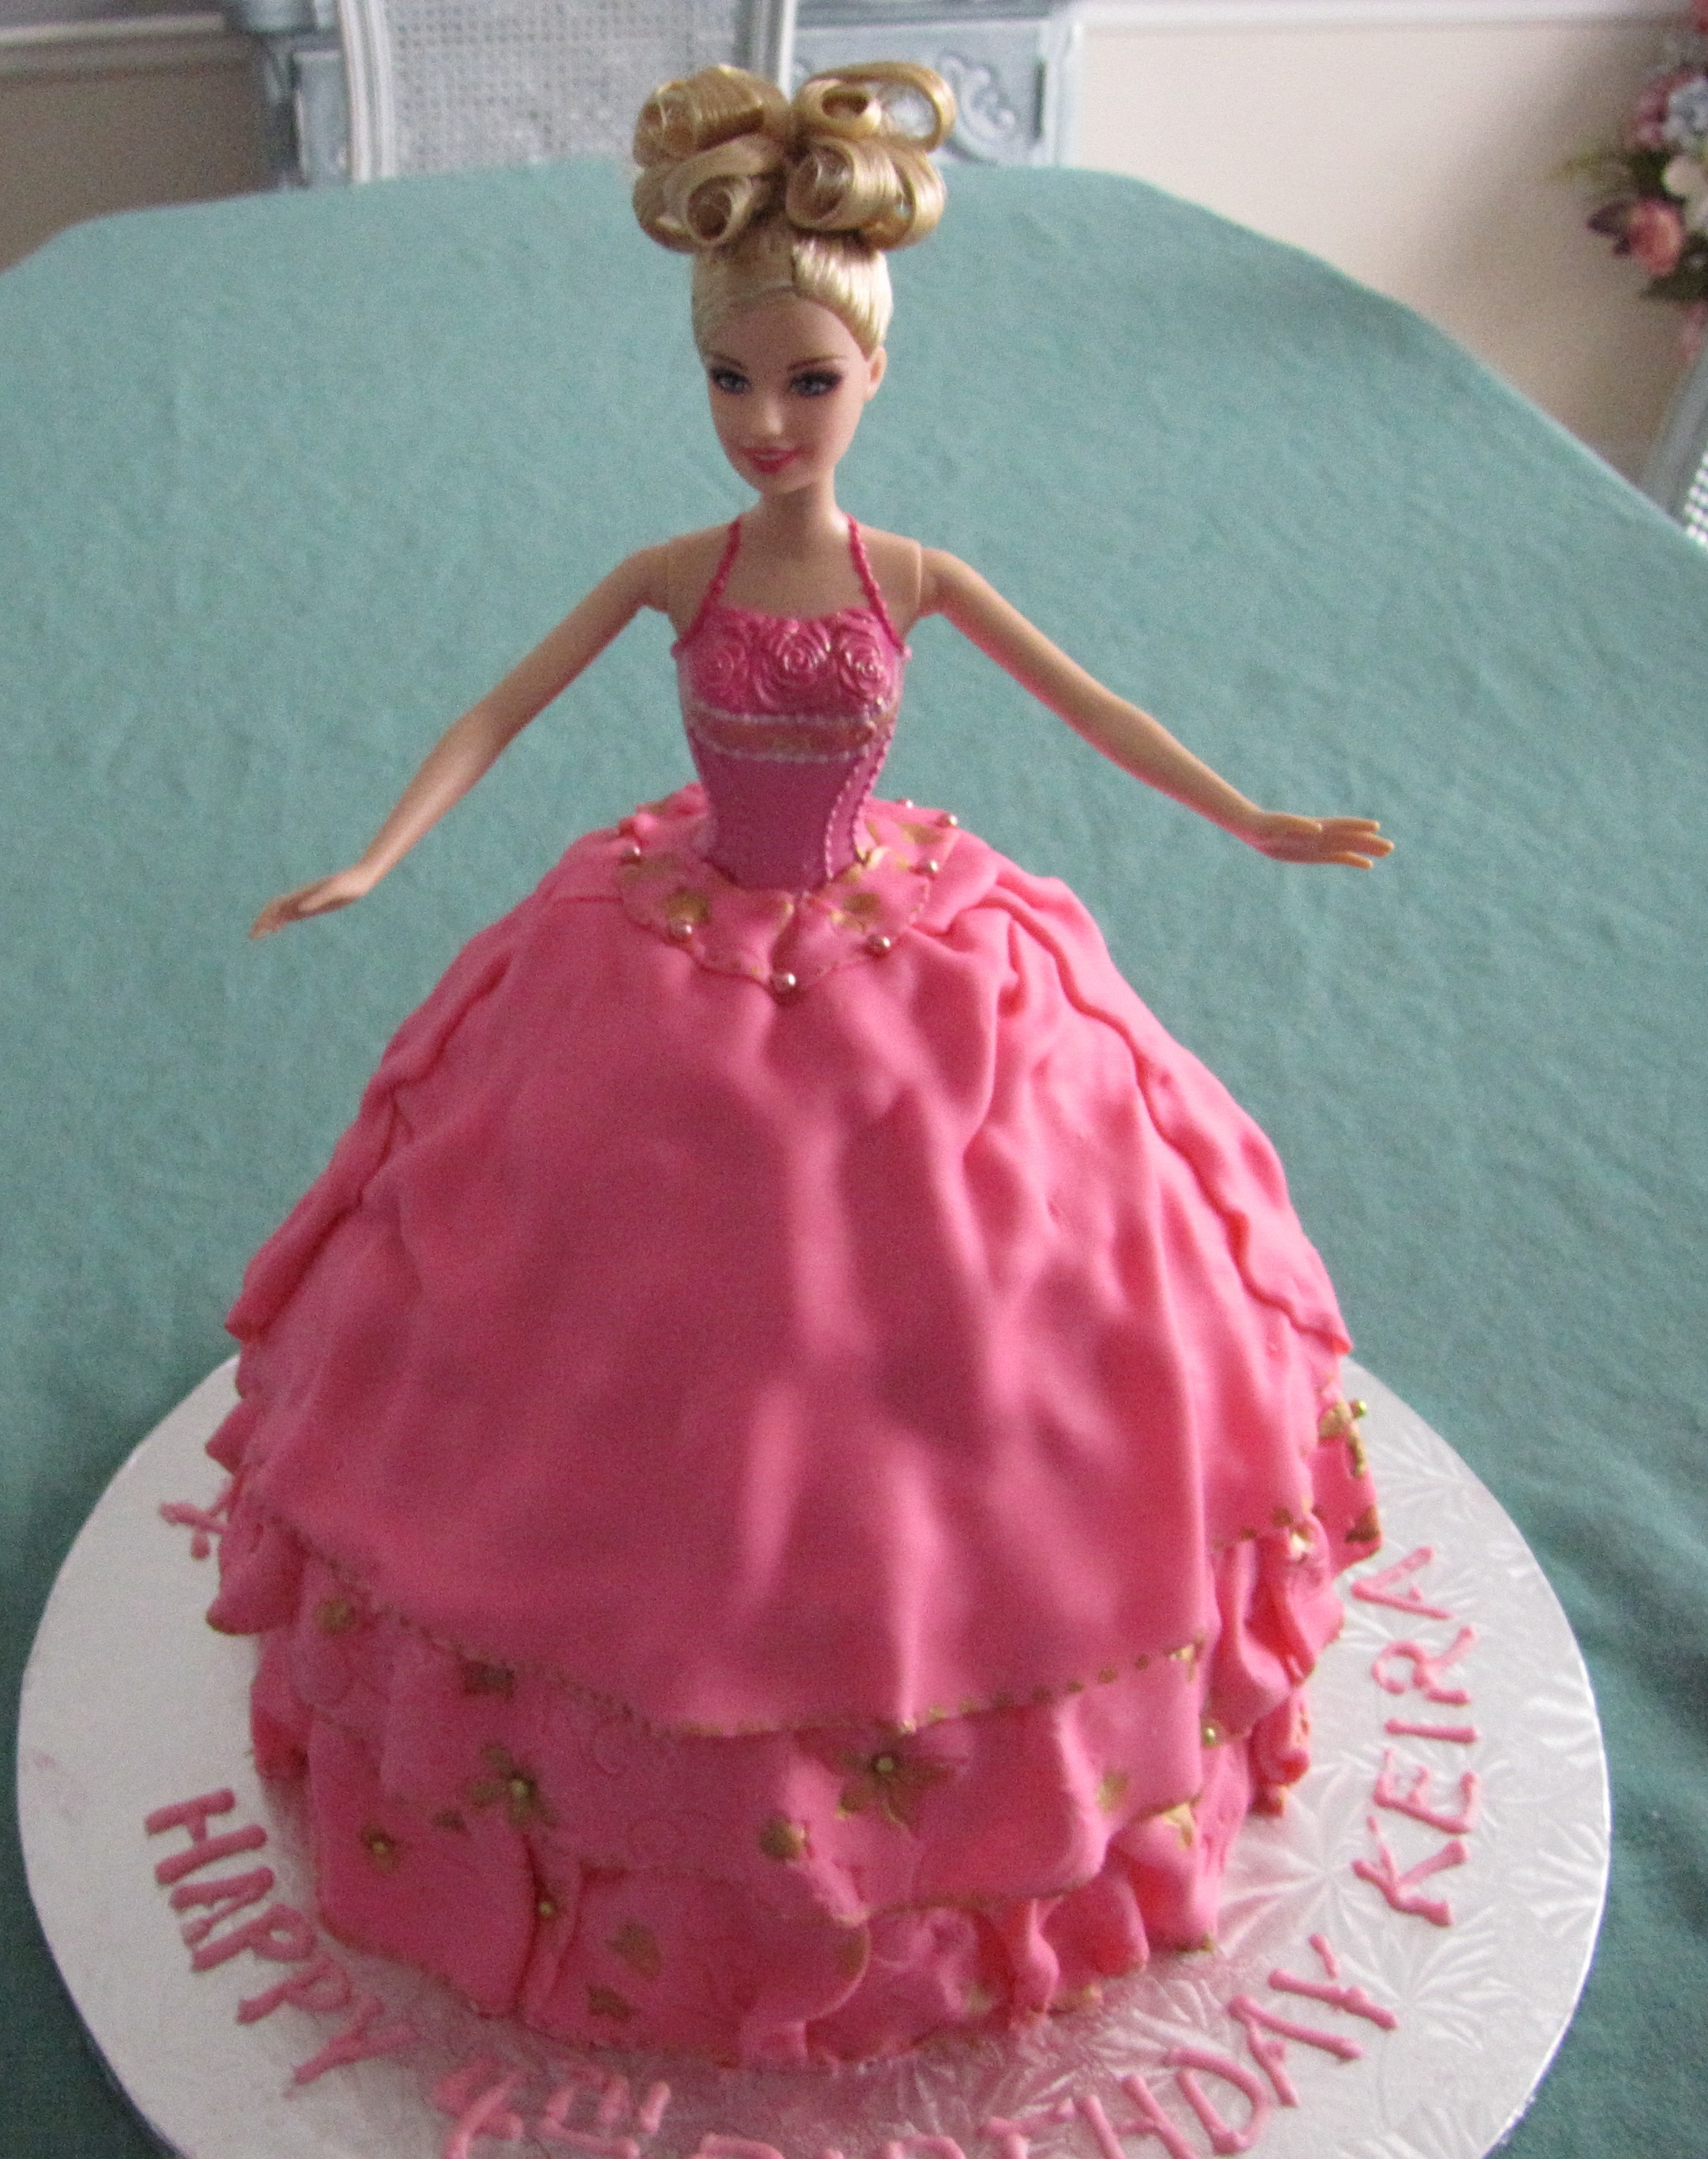 Barbie Dress Cake Pan